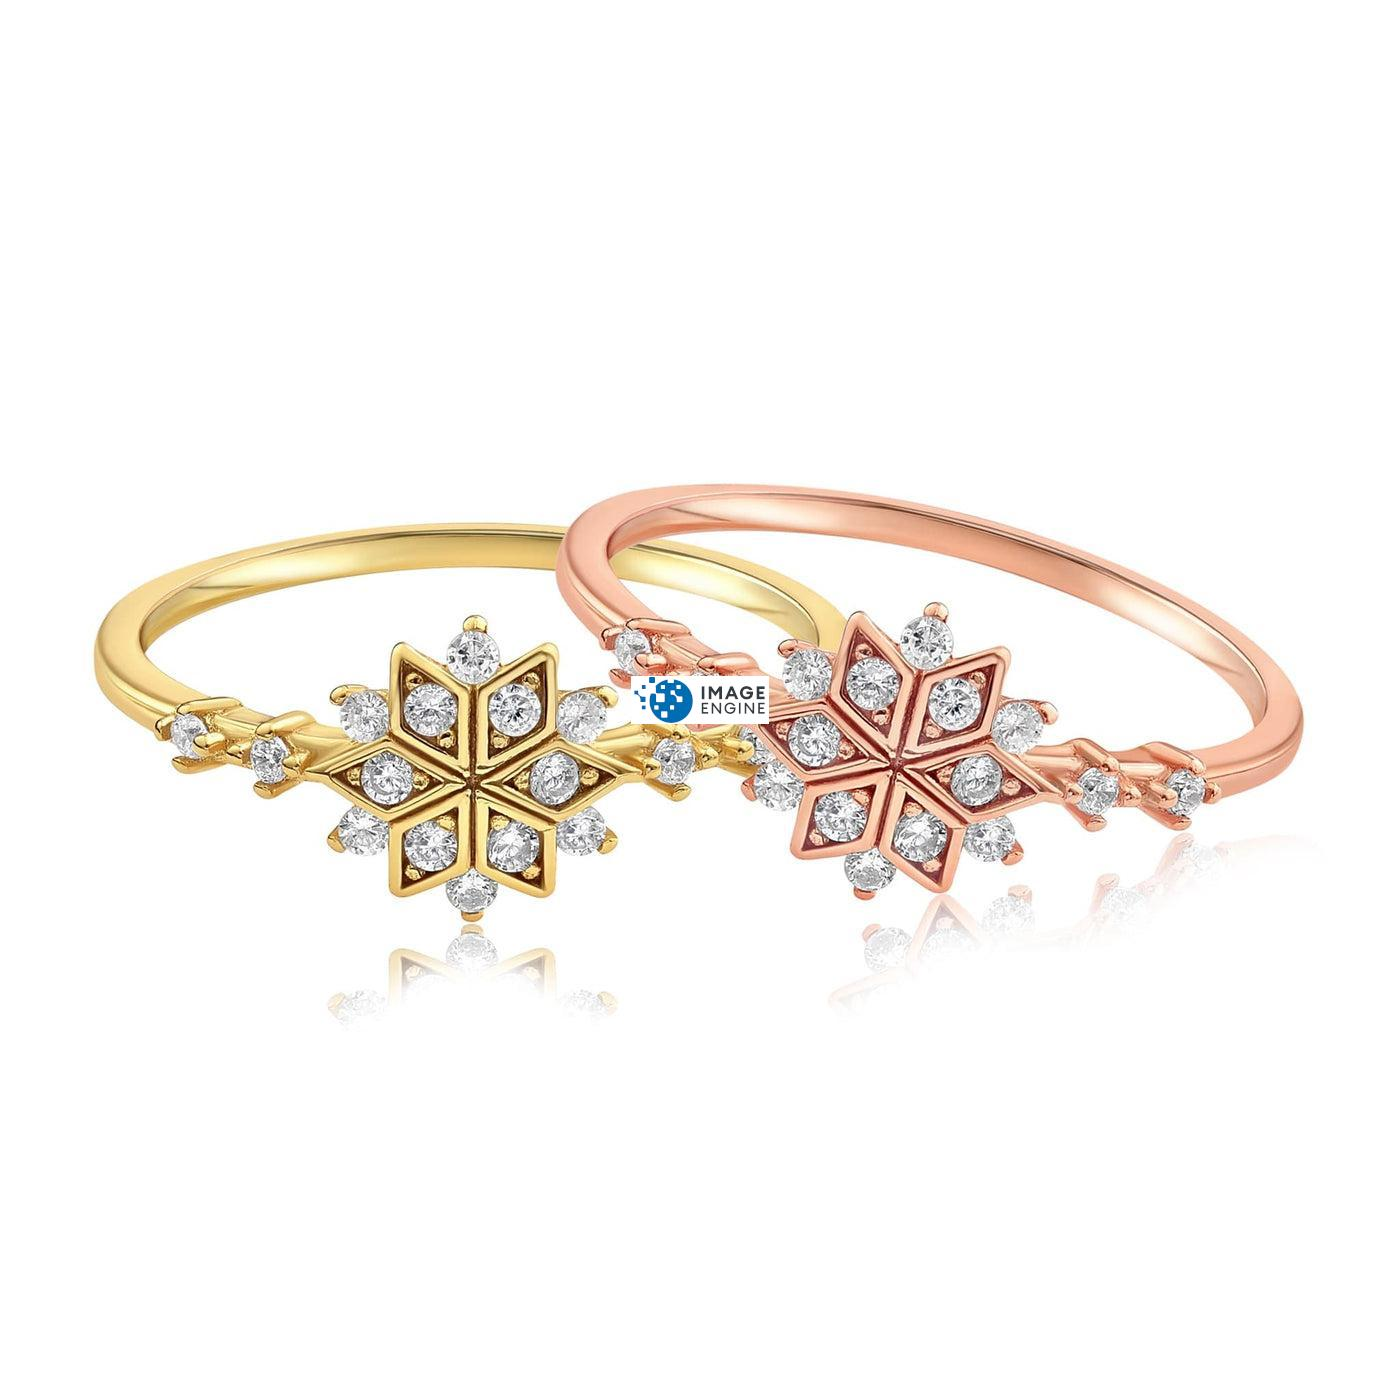 Sophia Snowflake Ring - Front View Side by Side - 18K Rose Gold Vermeil and 18K Yellow Gold Vermeil